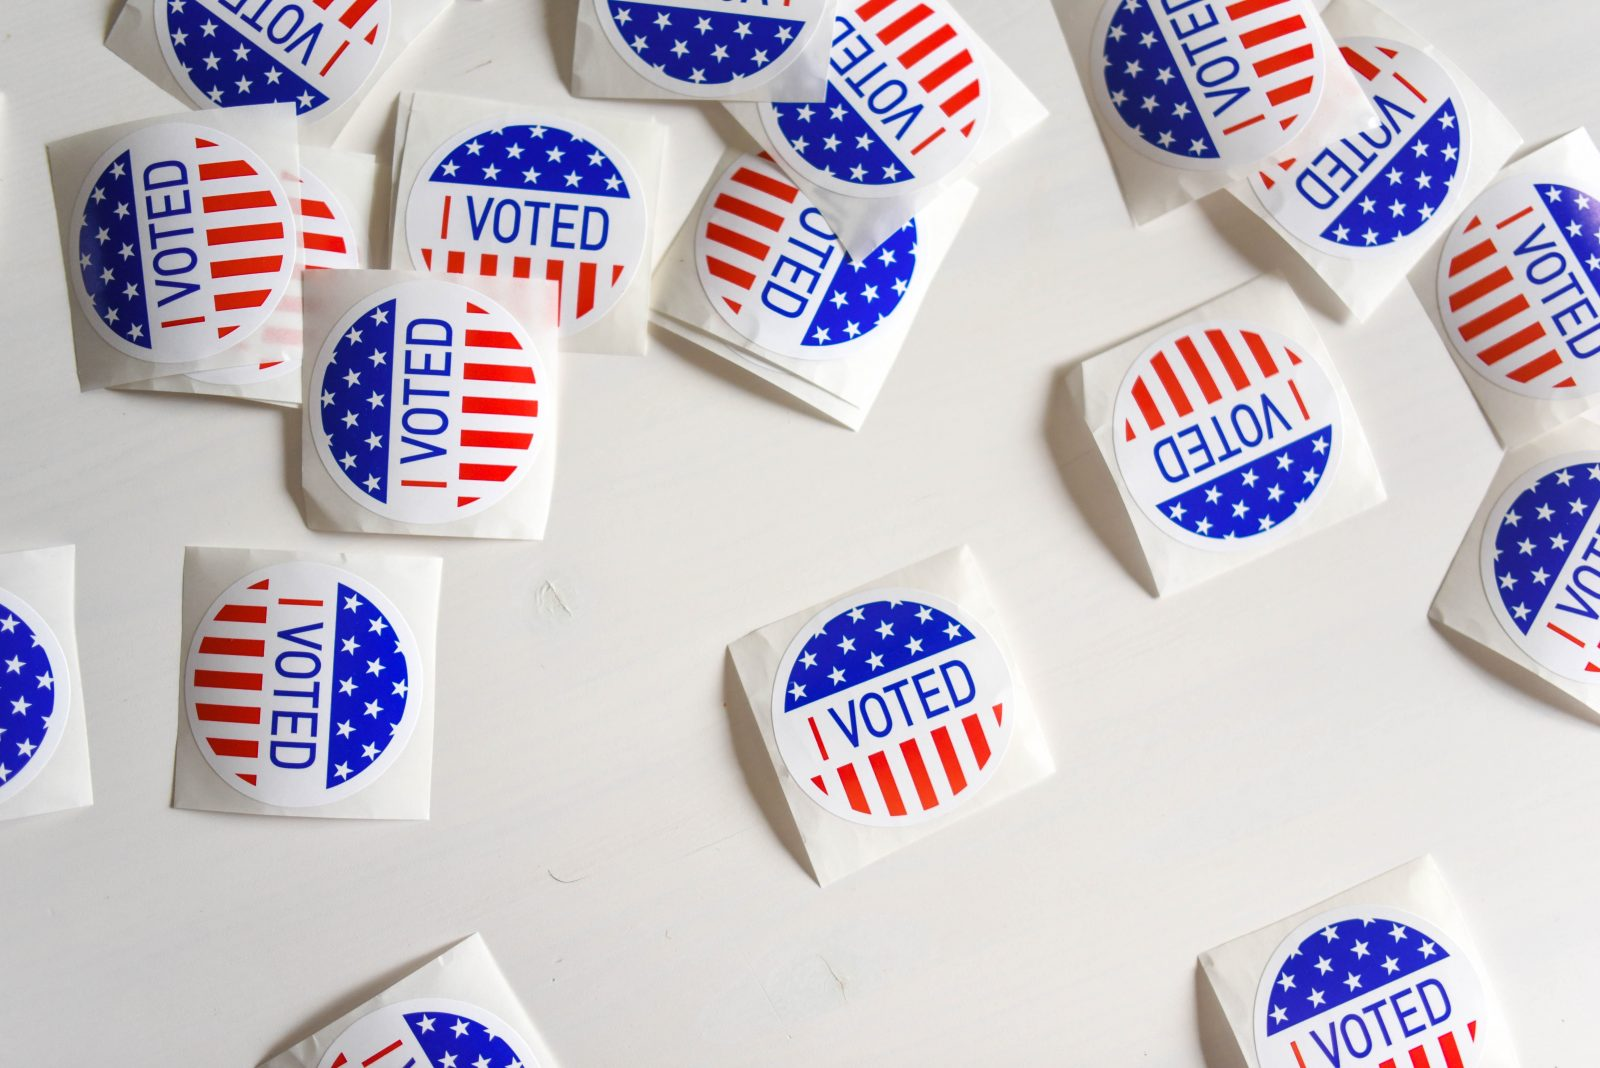 The Industry of Voting: How the Practice of Stealth Politics Serves to Undermine American Democracy